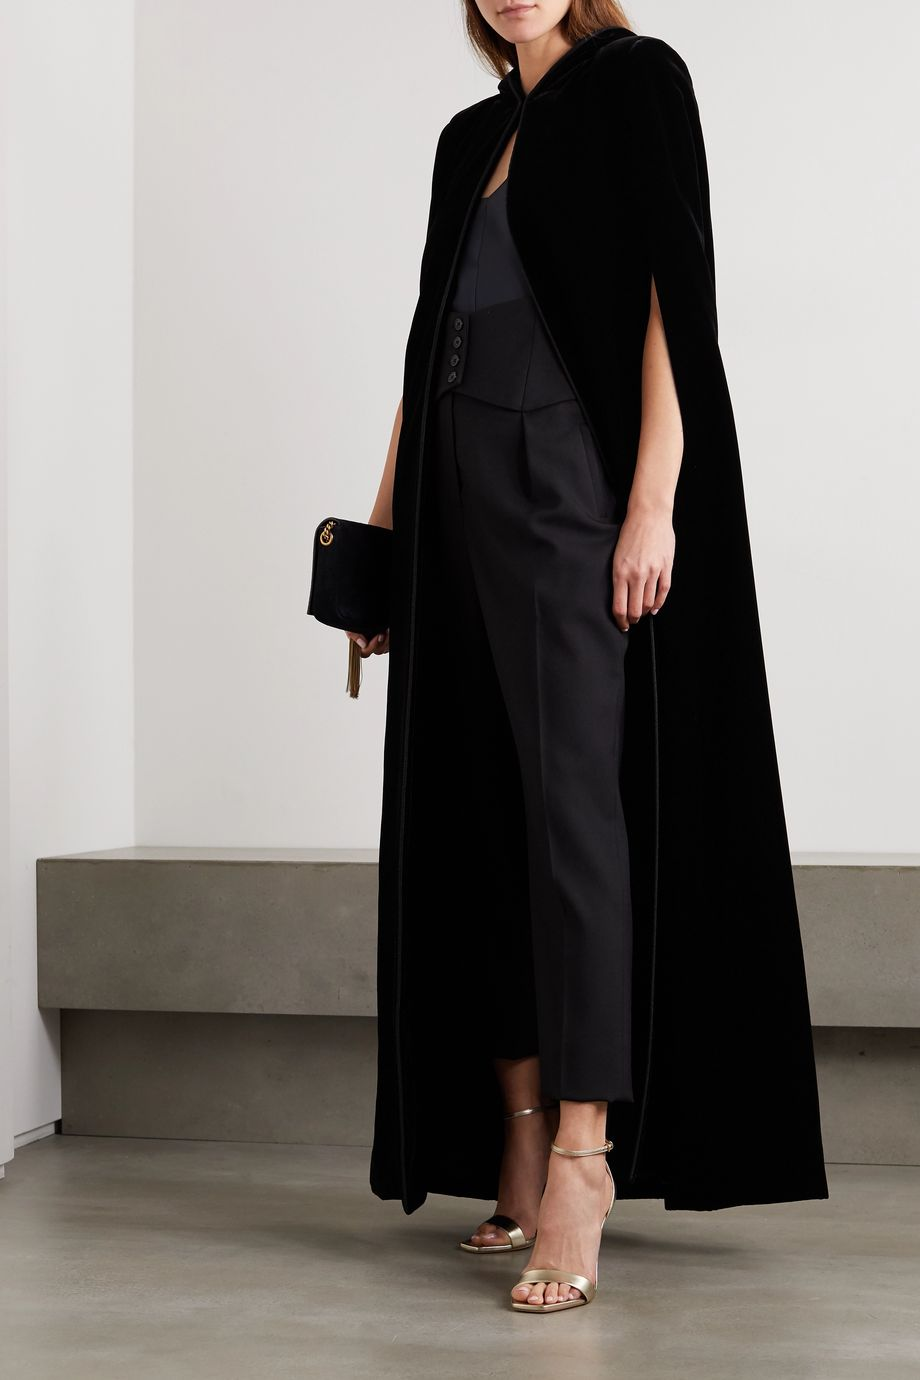 SAINT LAURENT Cape aus Samt mit Kapuze